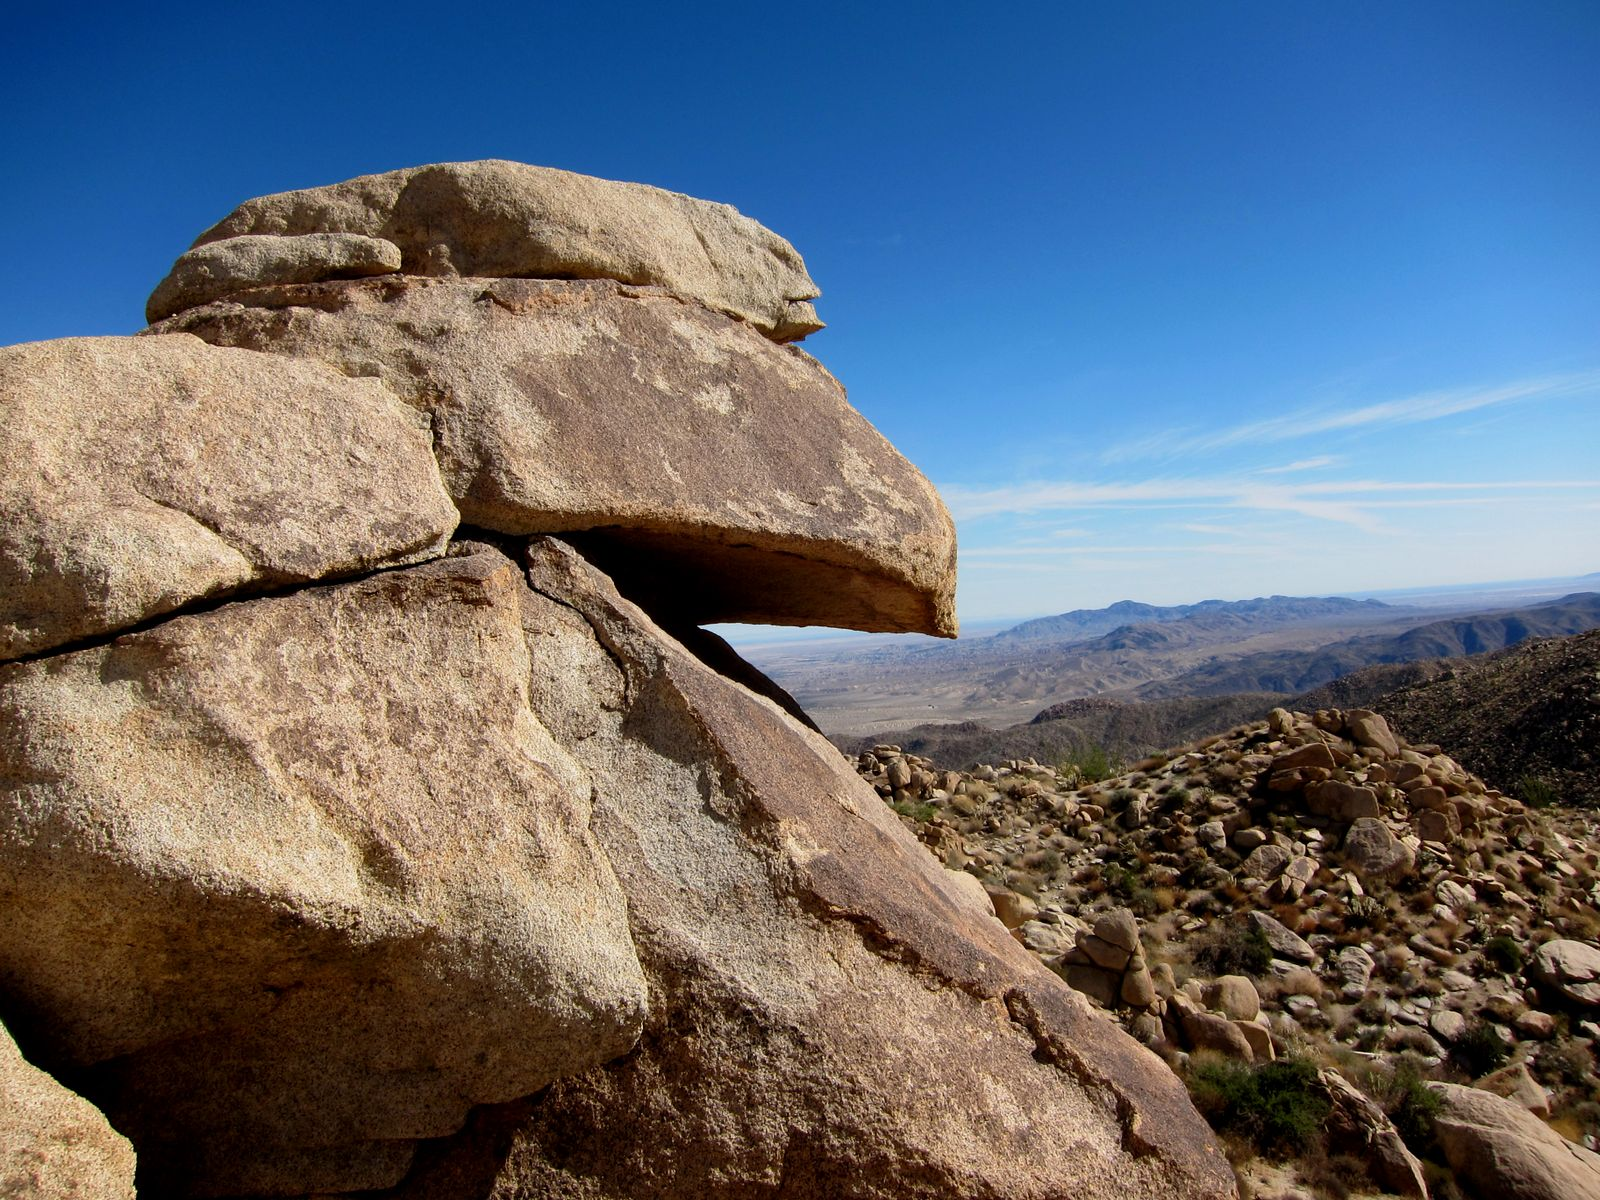 We found many interesting rock formations as we hunted for the Solstice Cave in Indian Valley.